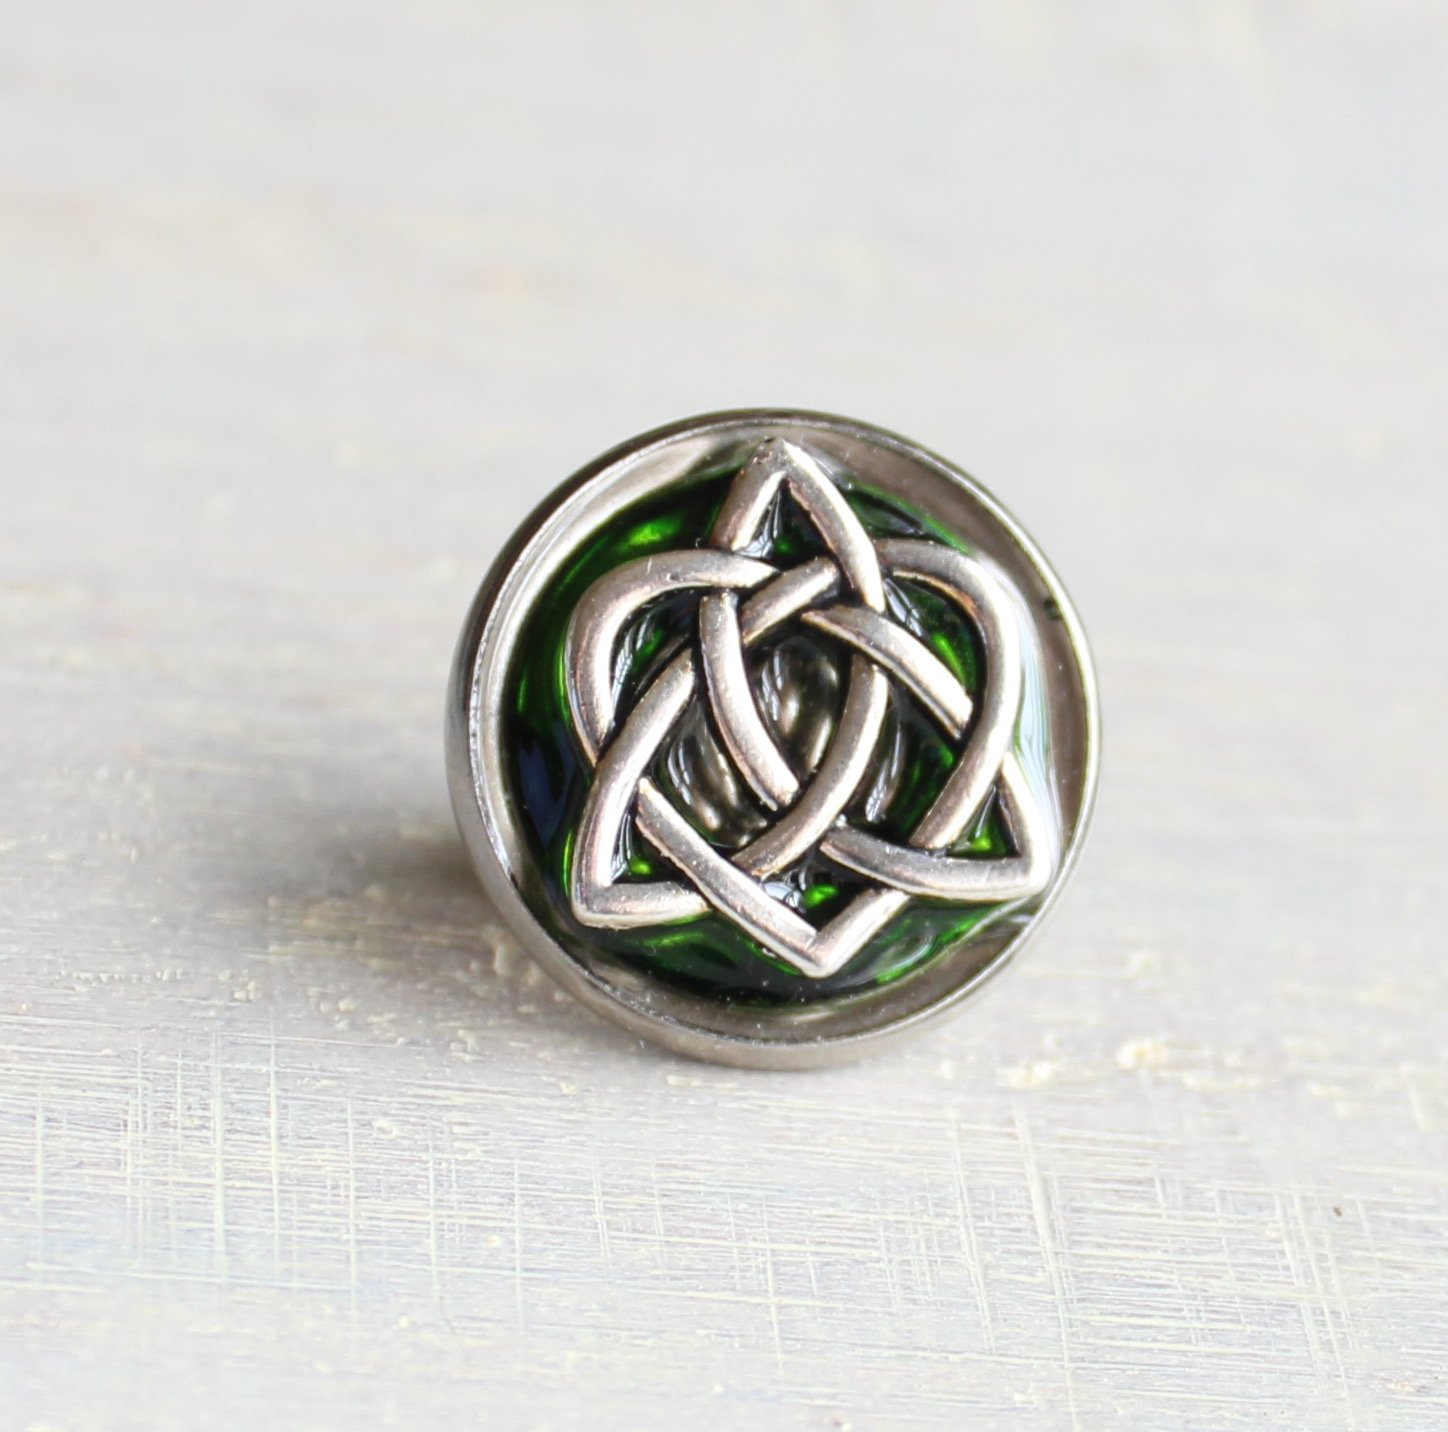 Forest green celtic knot tie tack / lapel pin.